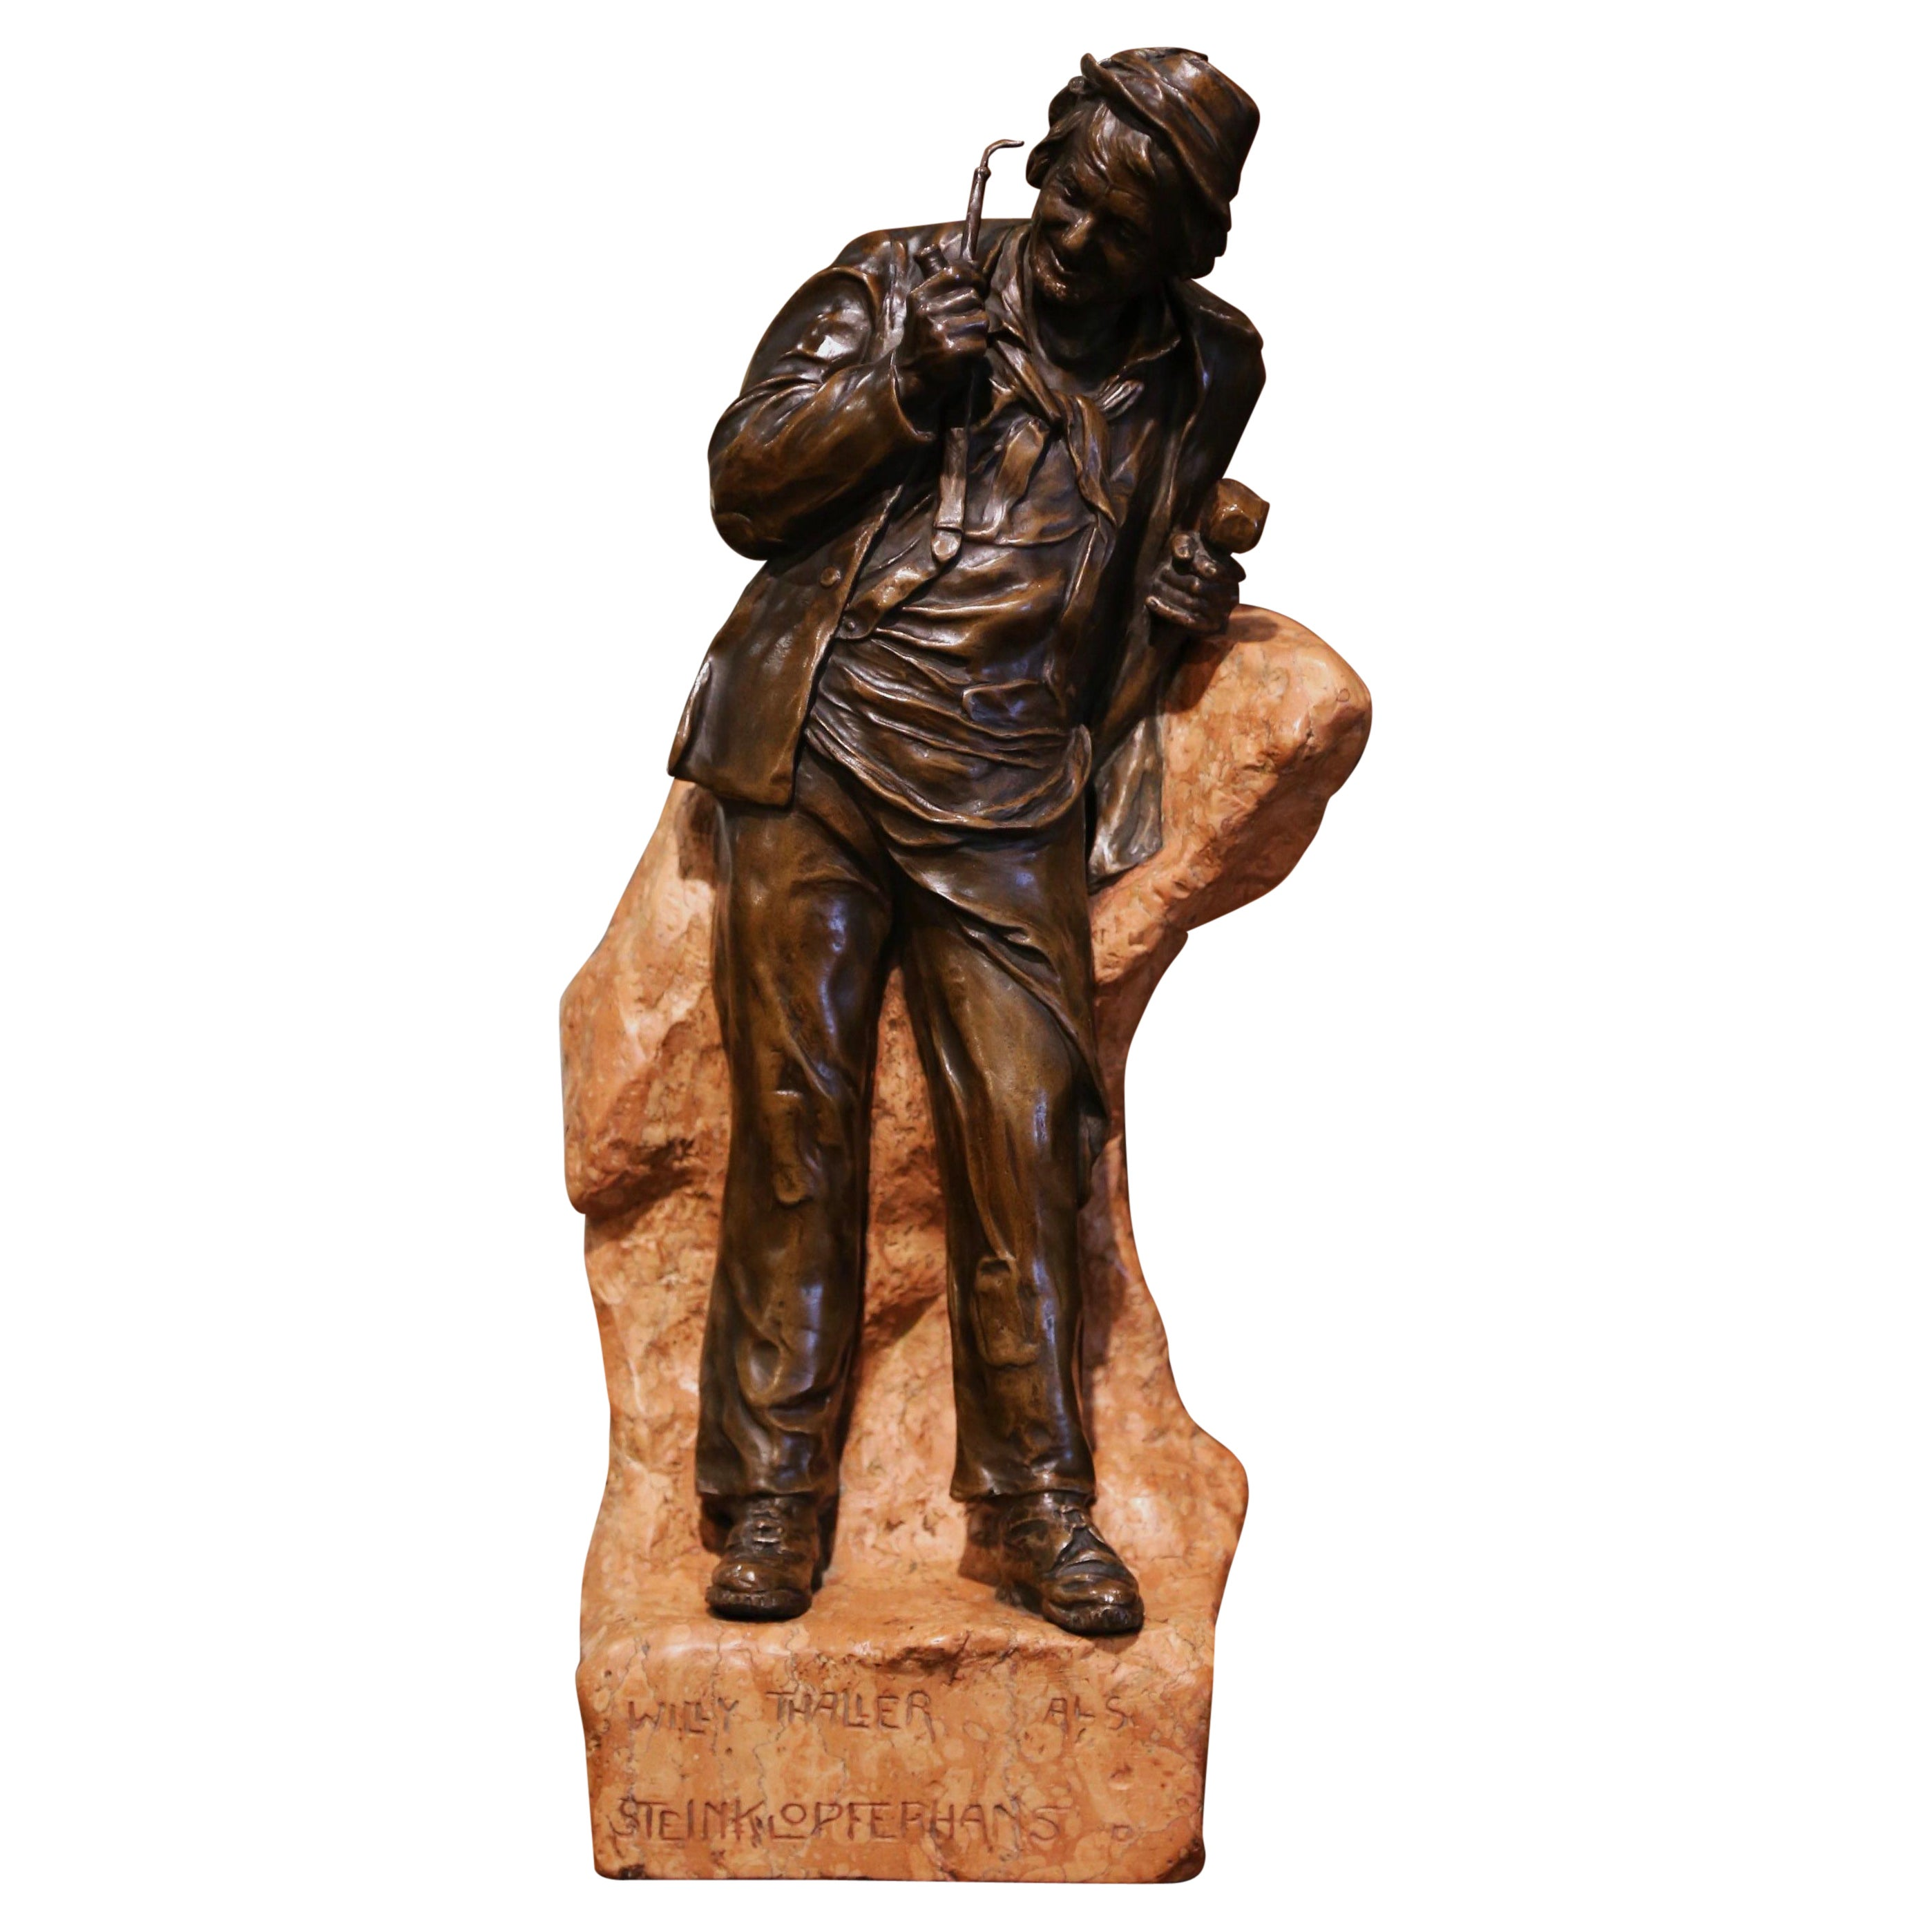 19th Century Austrian Patinated Bronze and Marble Signed Statue of Willy Thaller